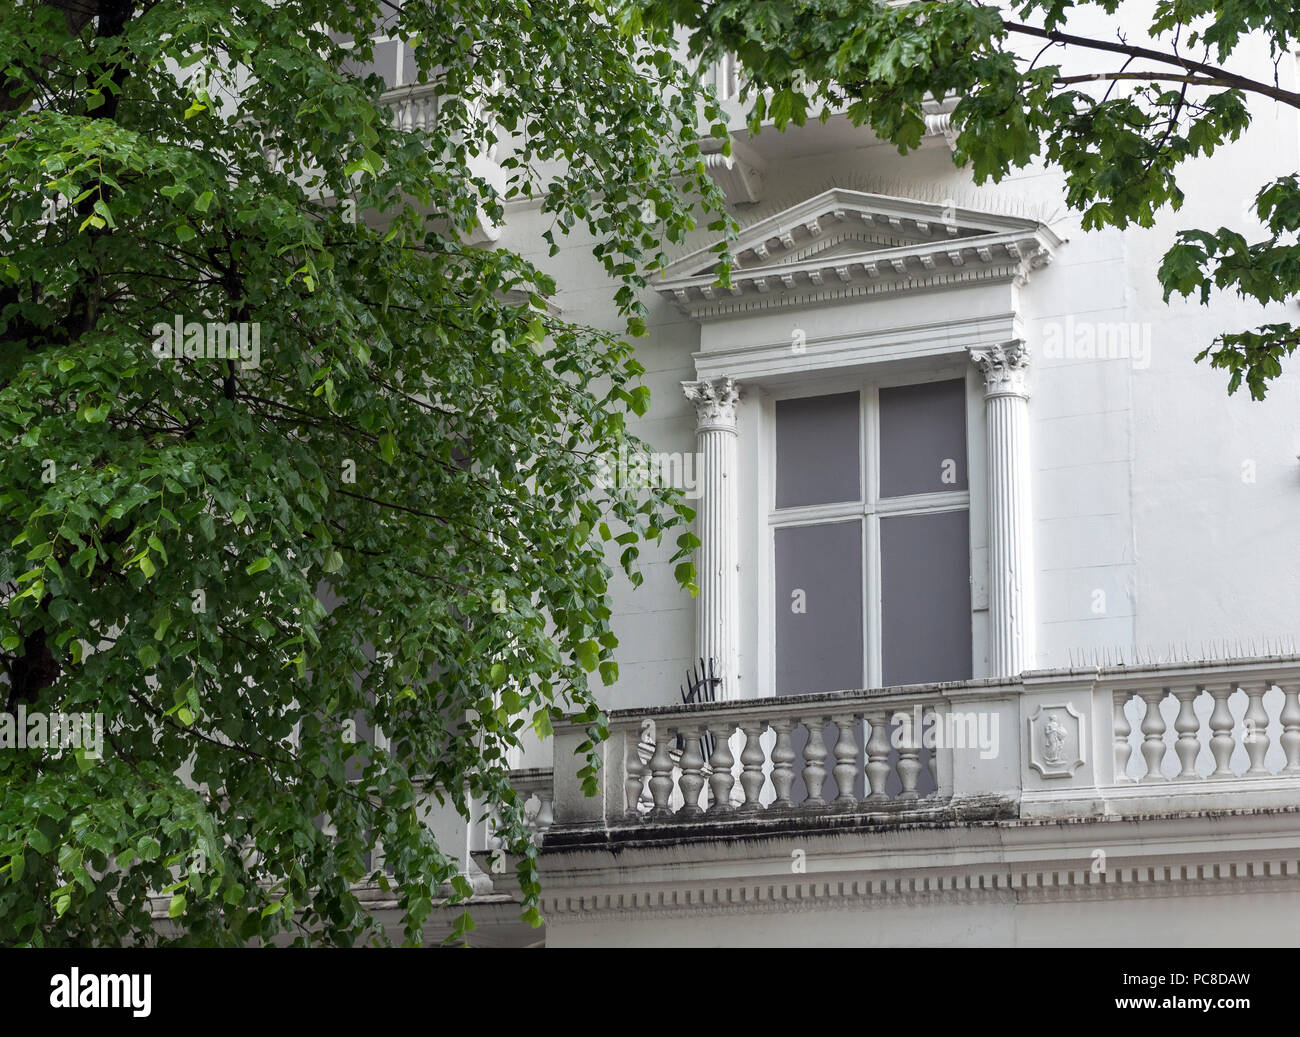 False facades of houses at 23 and 24 Leinster Gardens, Bayswater, London, UK - Stock Image